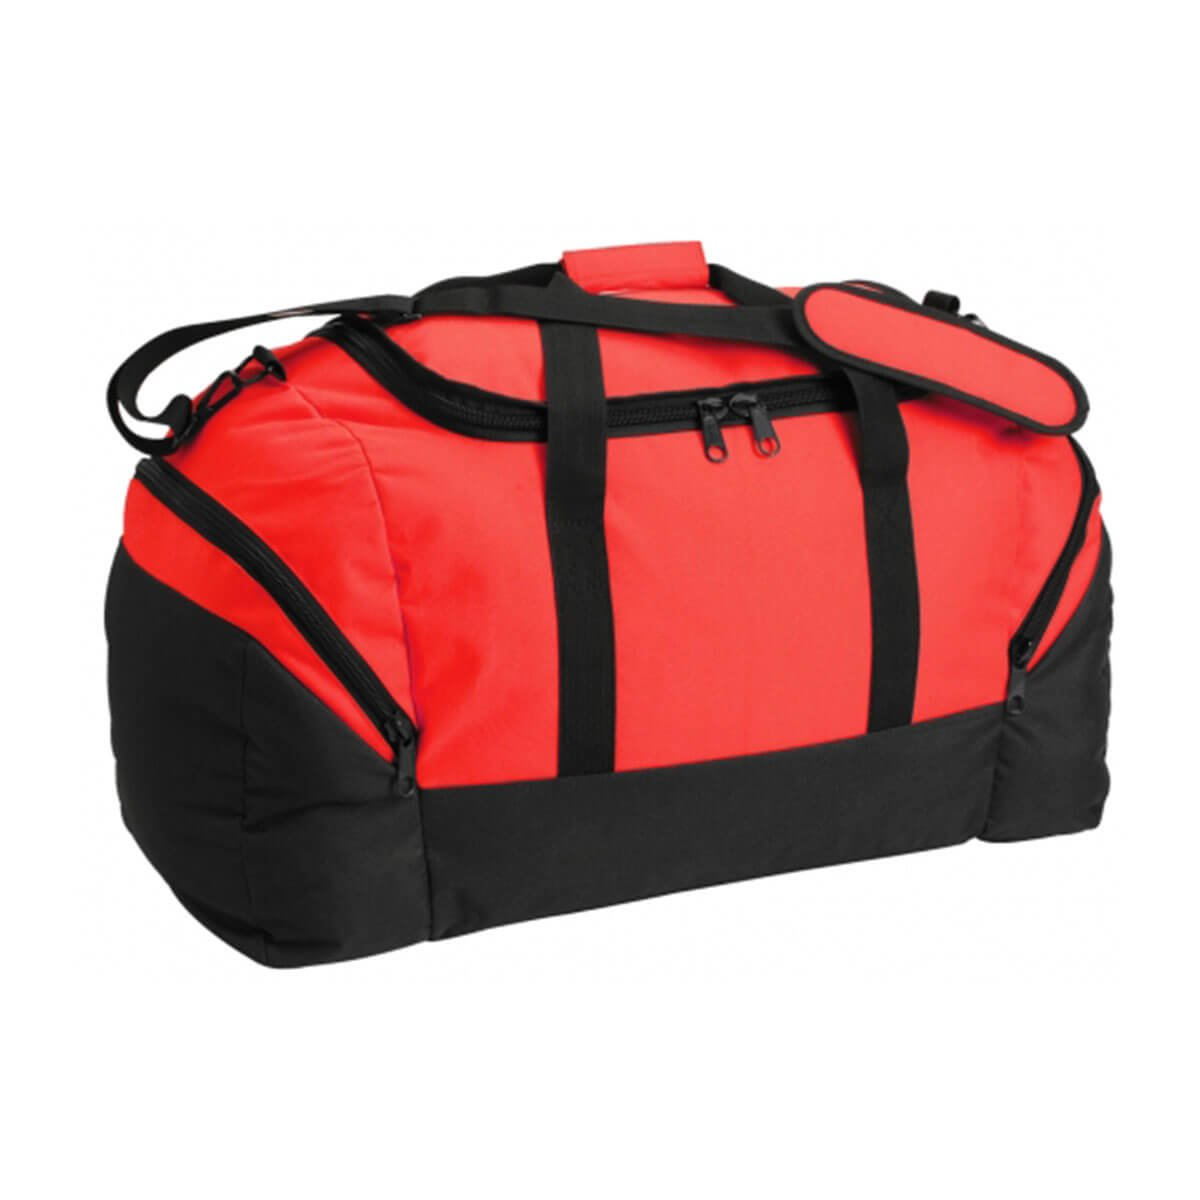 Team Sports Bag-Red / Black